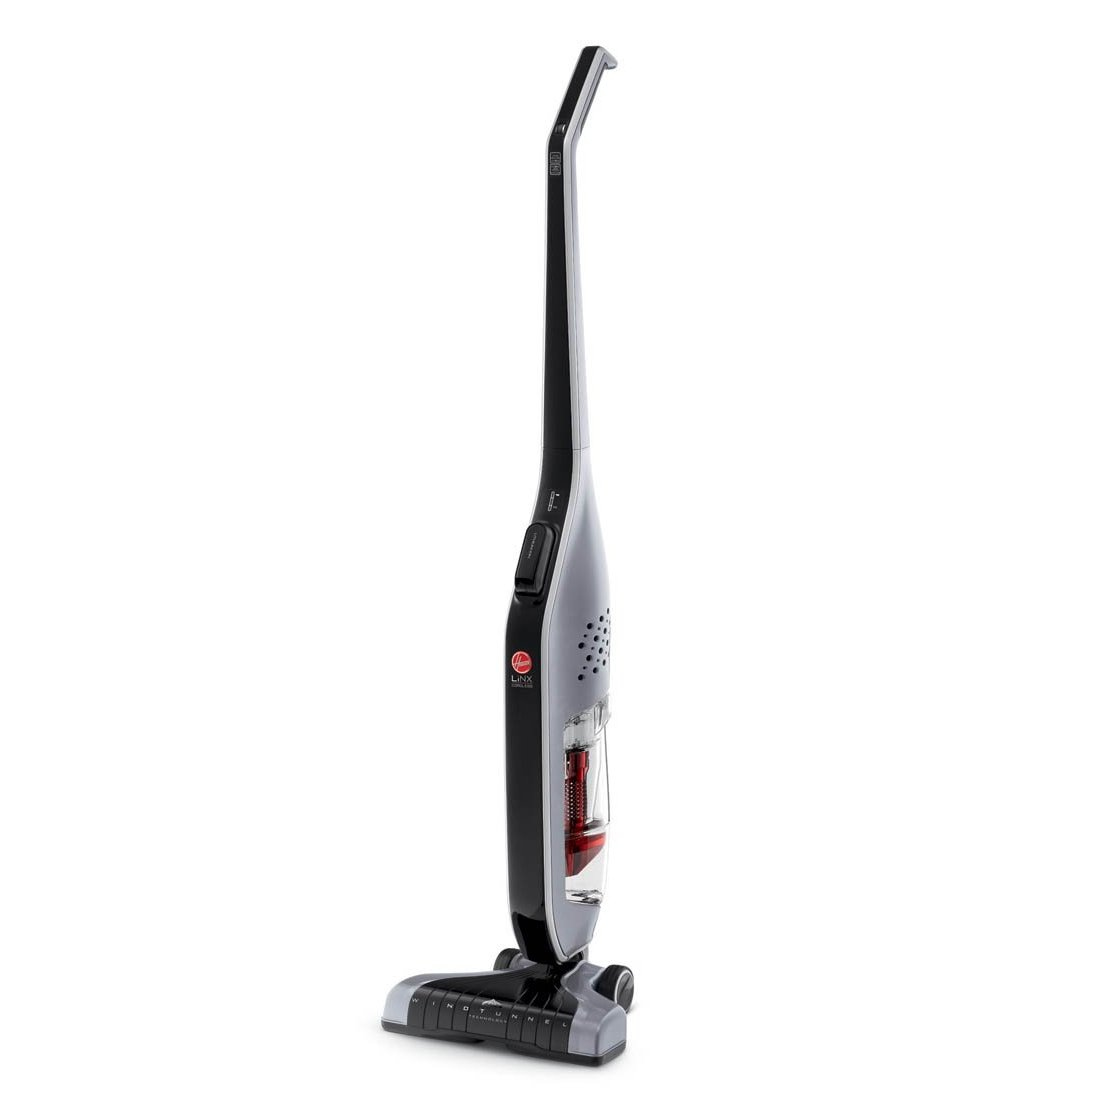 ... For Woman: The Advantages Of Using The Best Vacuum For Hardwood Floors